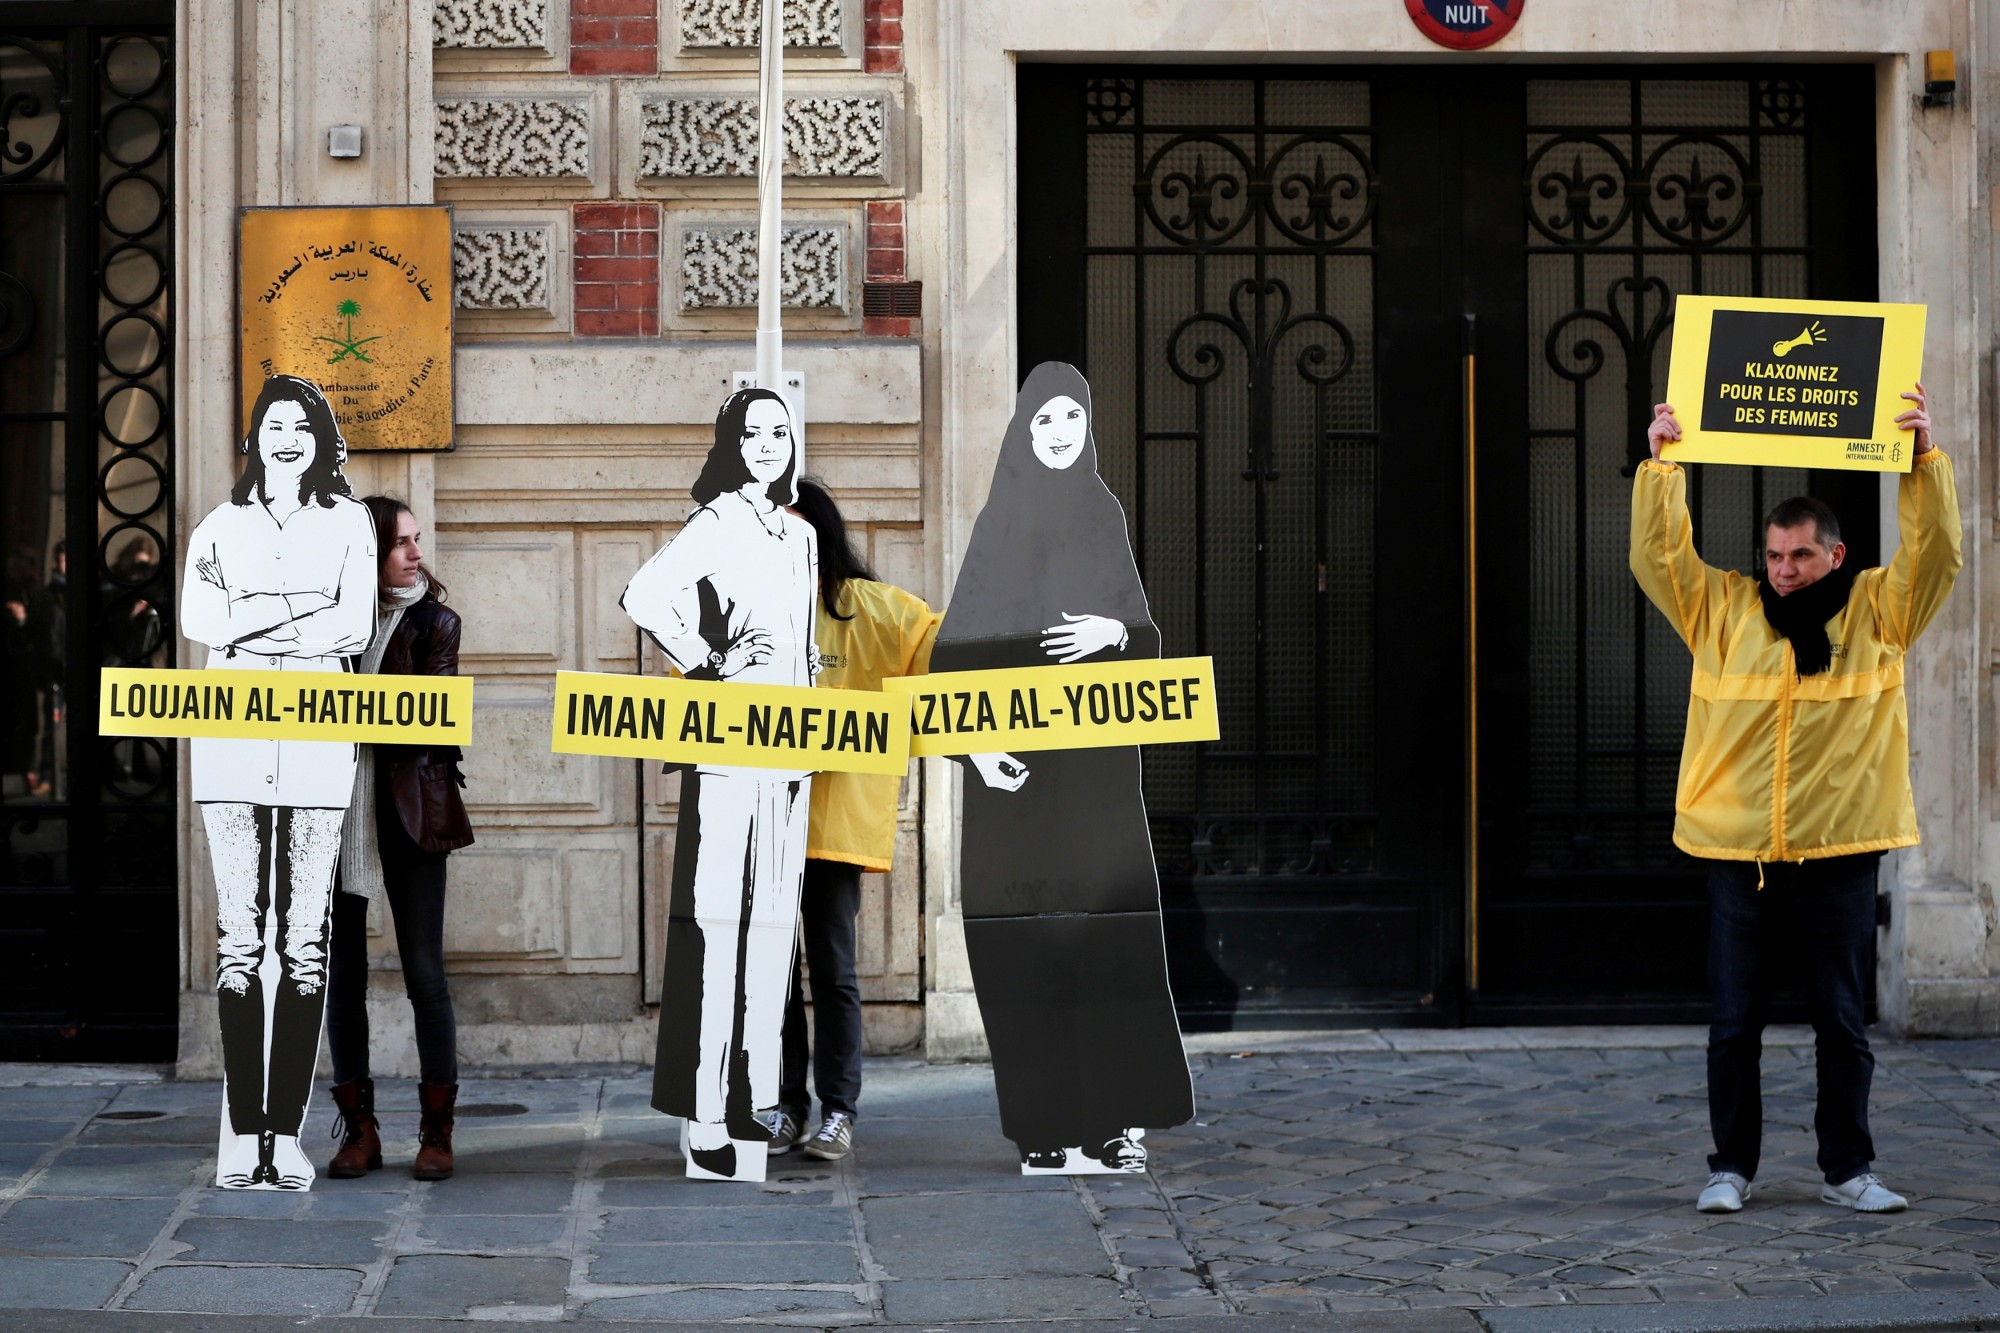 Demonstrators from Amnesty International stage a protest on International Women's day to urge Saudi authorities to release jailed women's rights activists Loujain al-Hathloul, Eman al-Nafjan and Aziza al-Yousef, outside the Saudi Arabian Embassy in Paris in March. | REUTERS